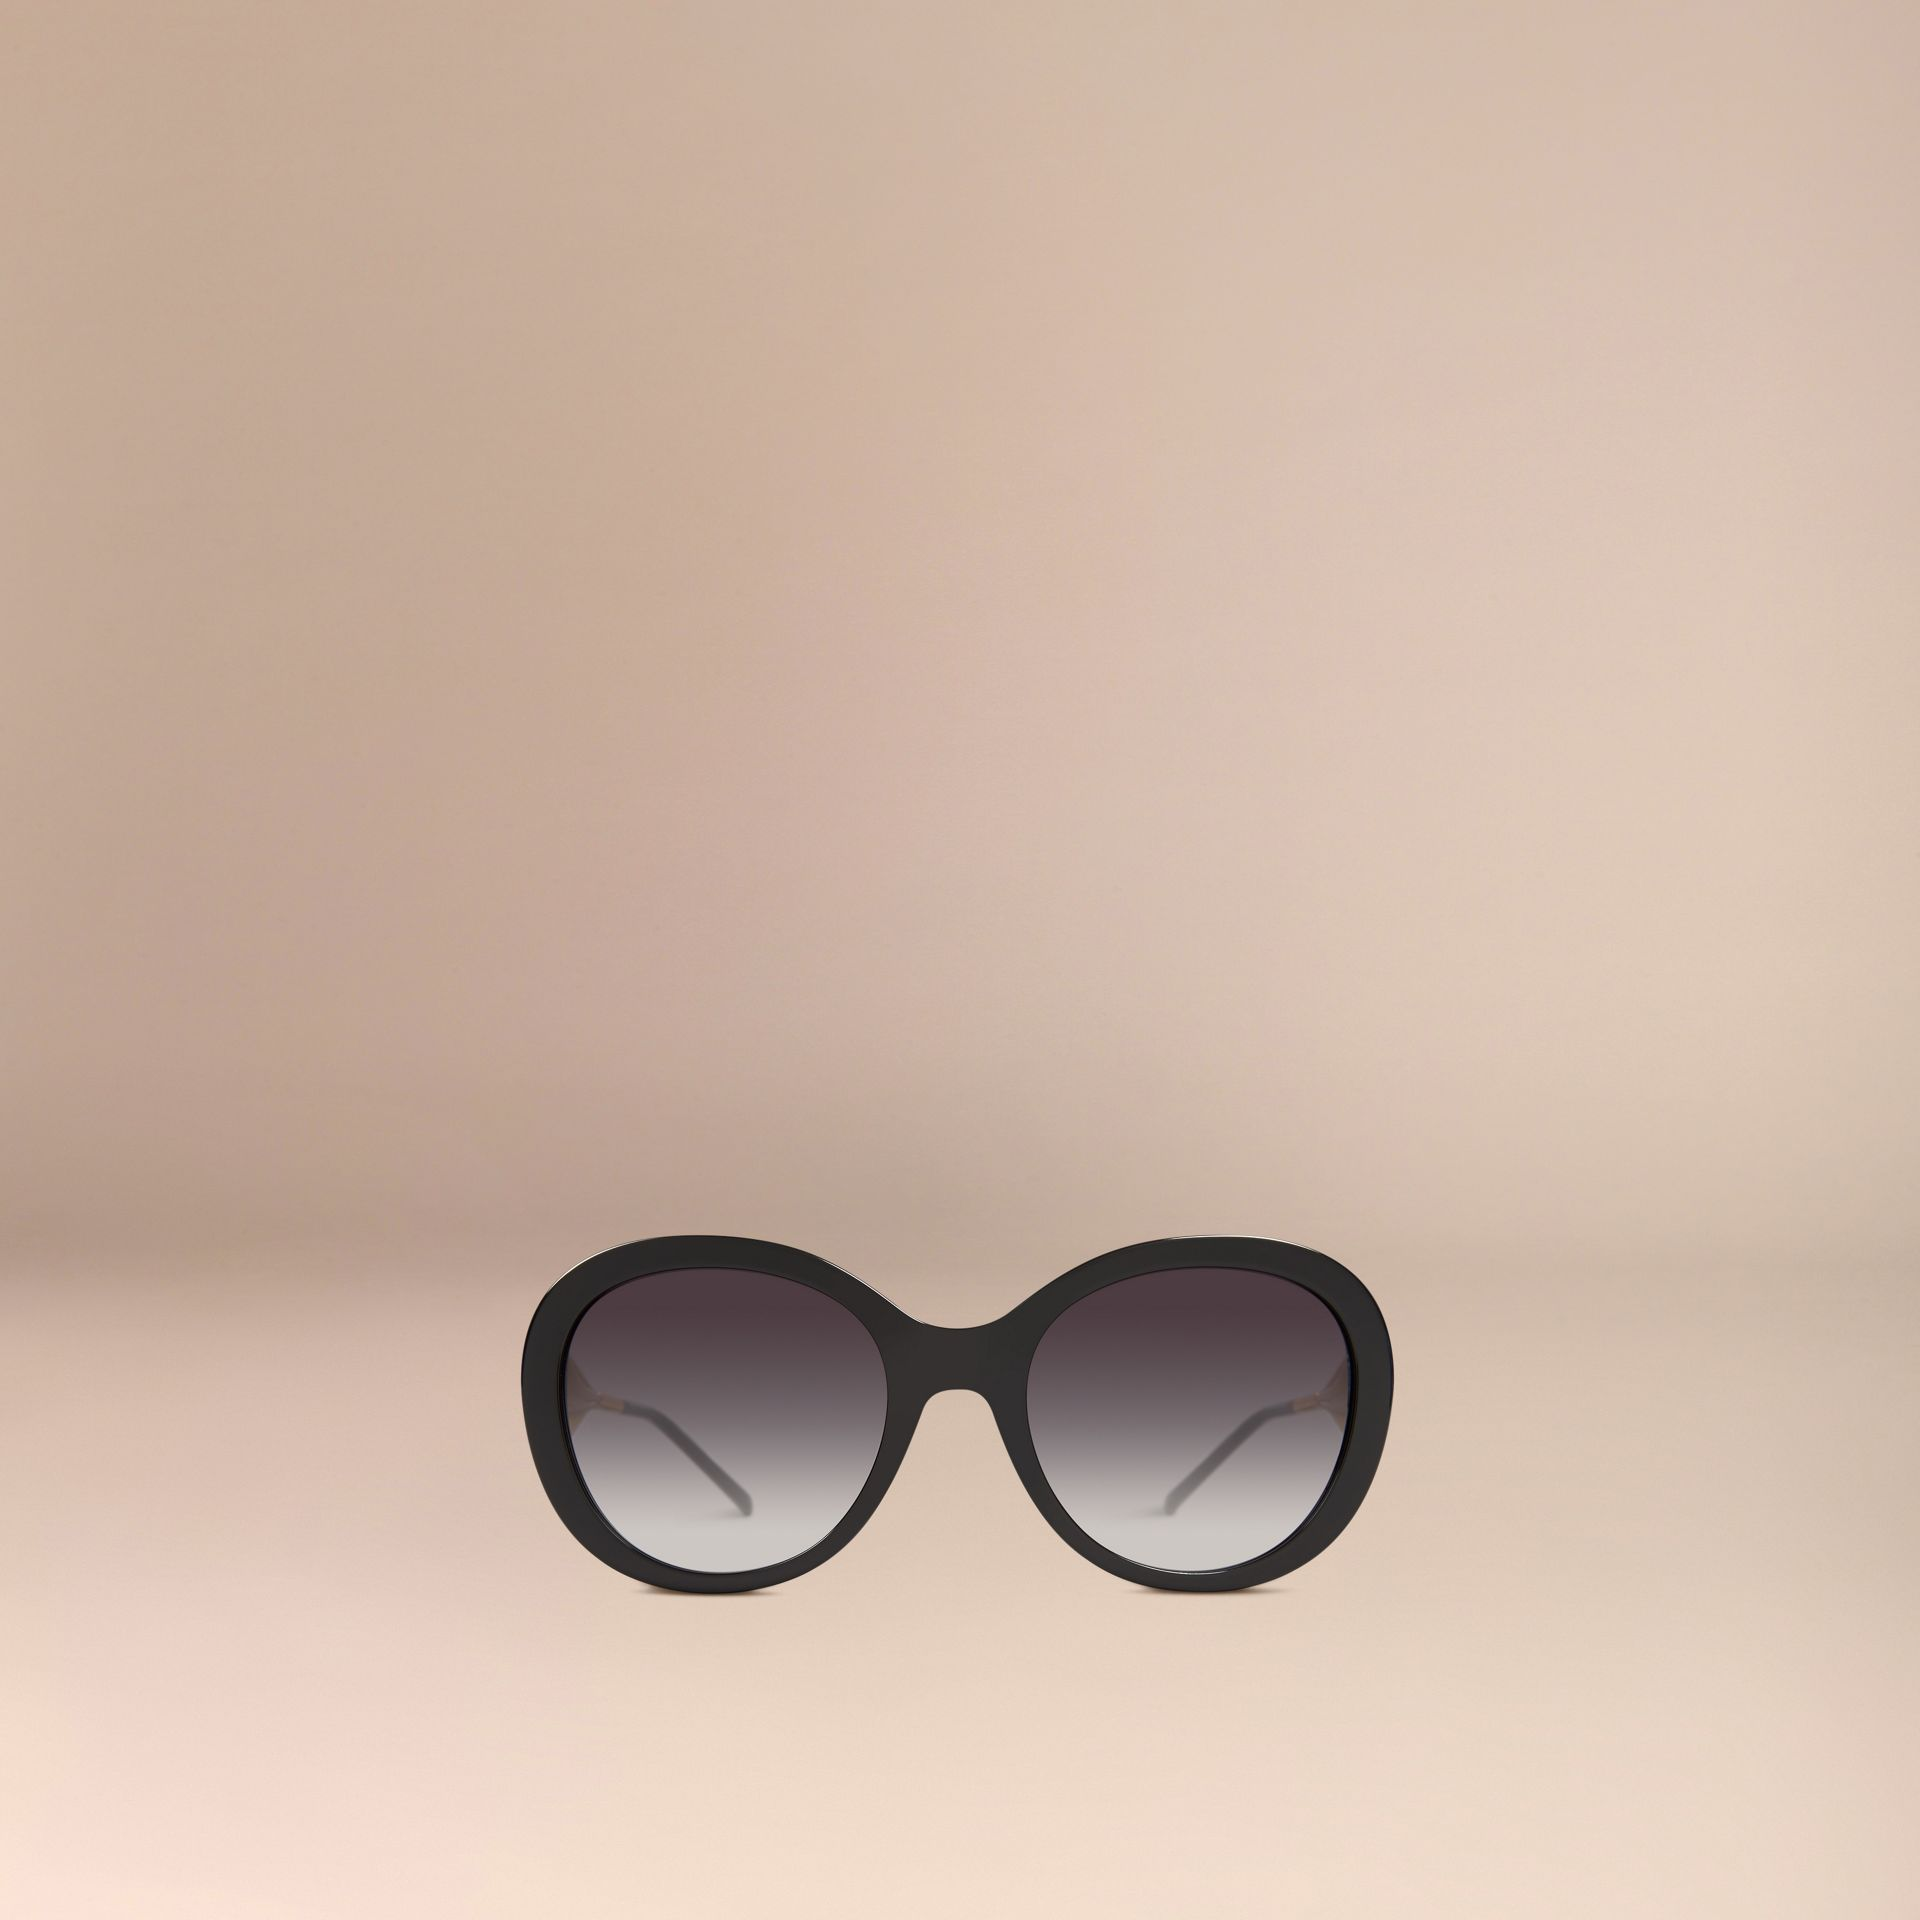 Gabardine Collection Oversize Round Frame Sunglasses in Black - Women | Burberry - gallery image 3